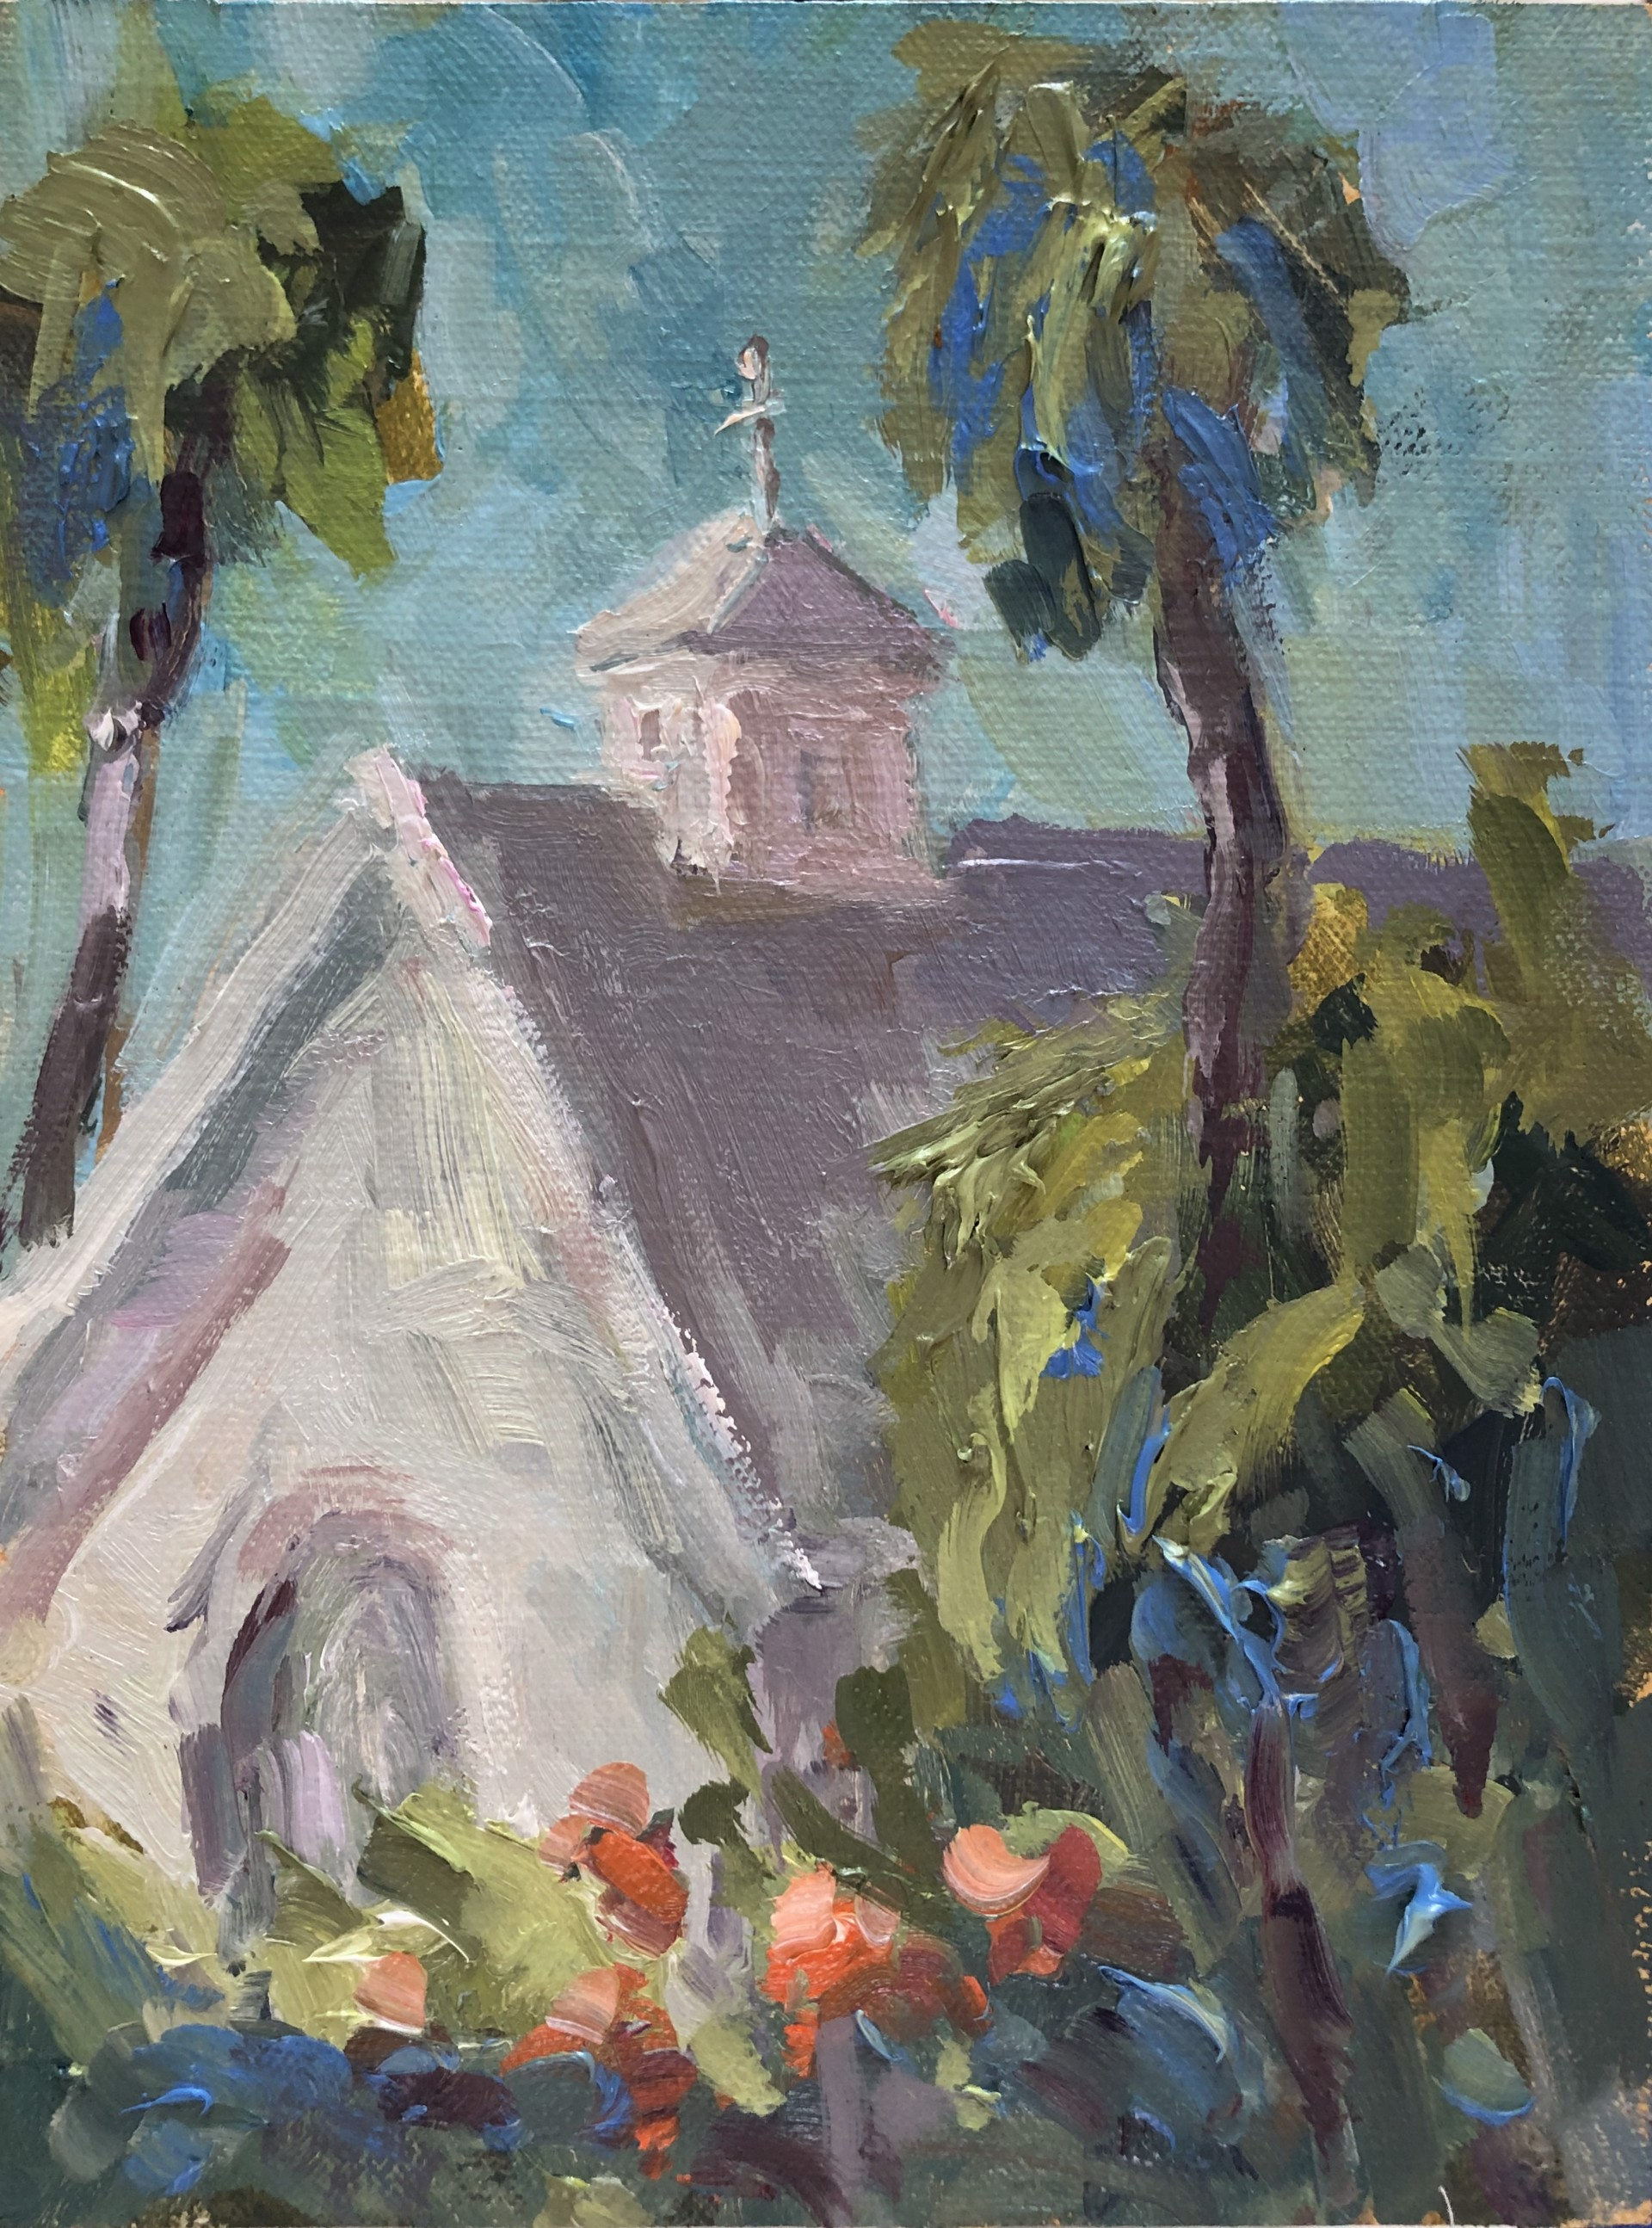 St James Church, Hope Town (Abaco) by Karen Hewitt Hagan